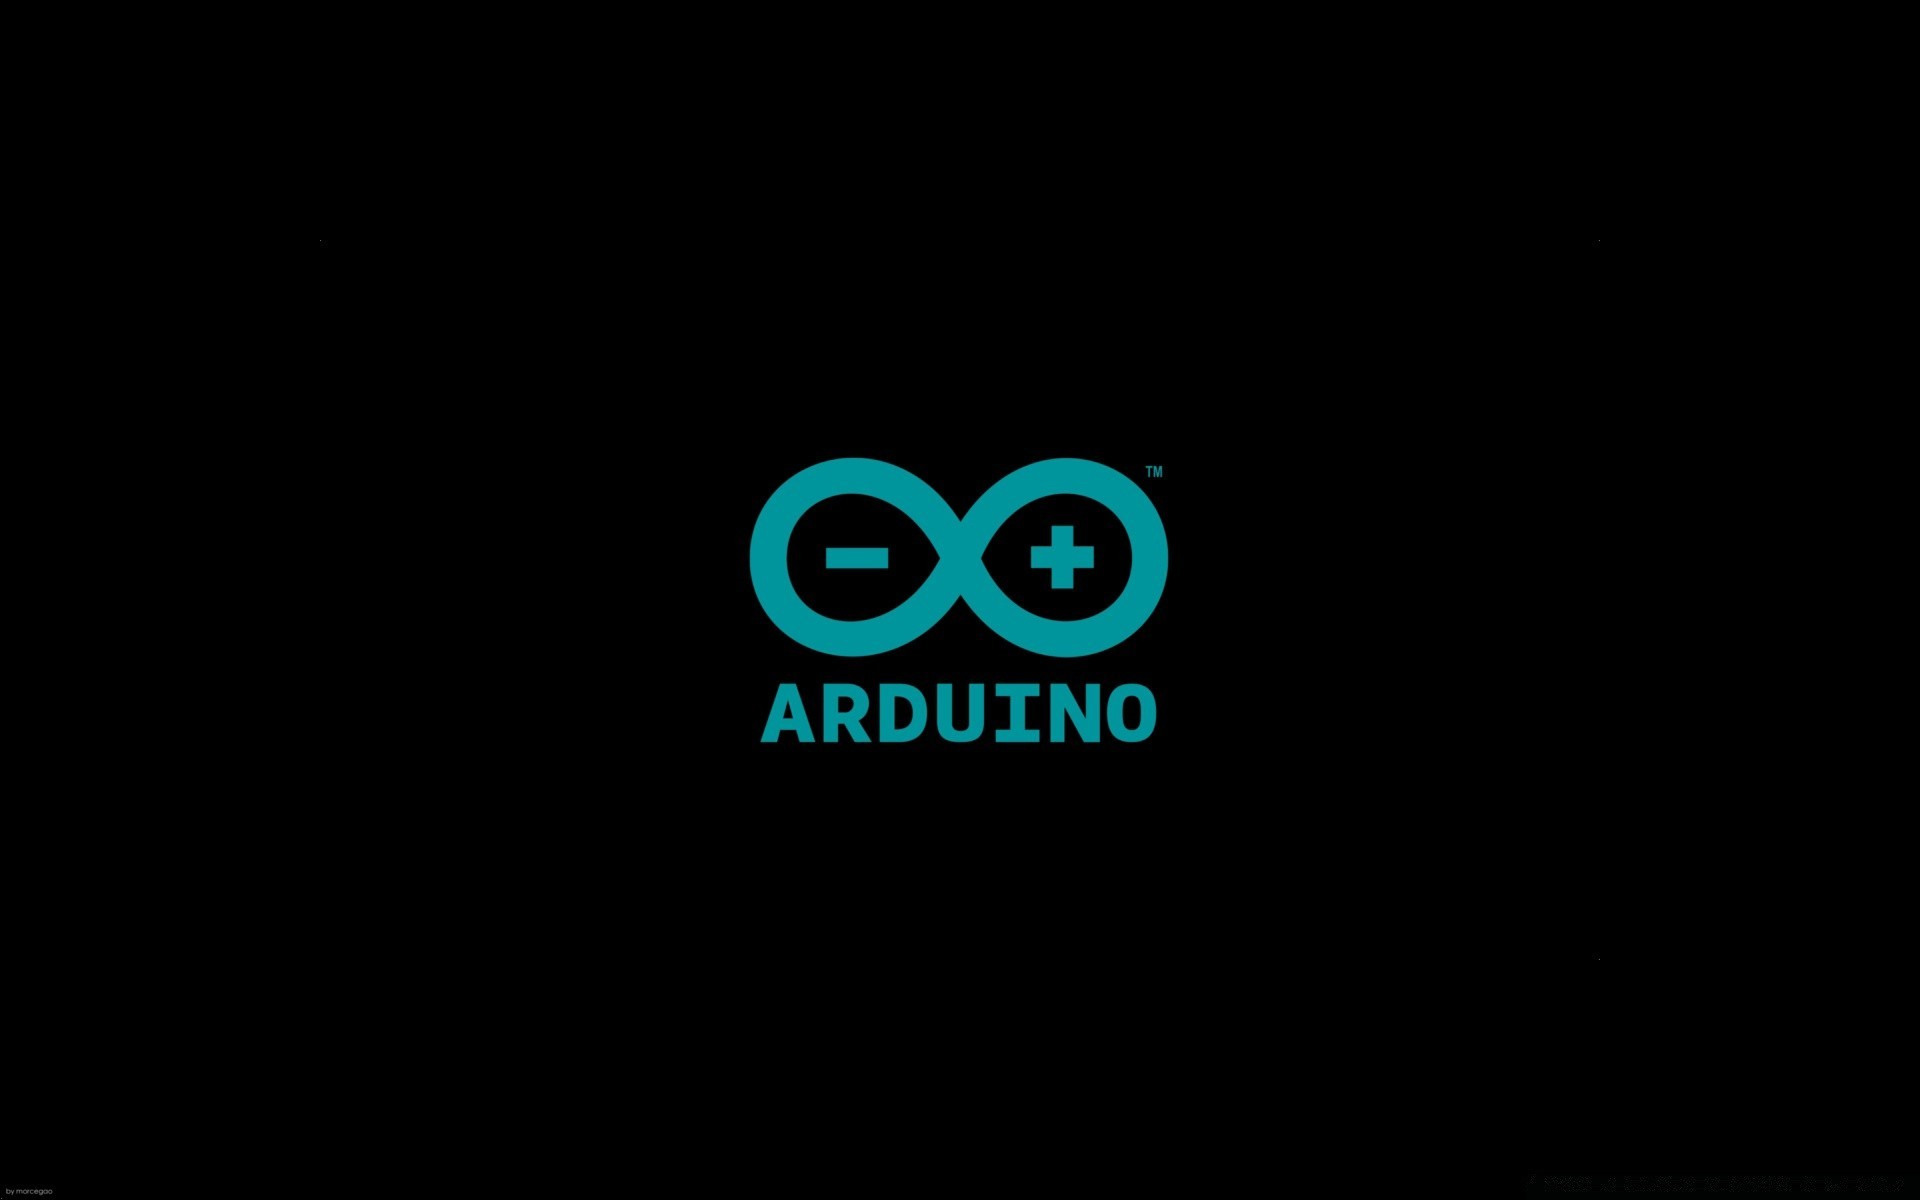 Arduino logo android wallpapers for free